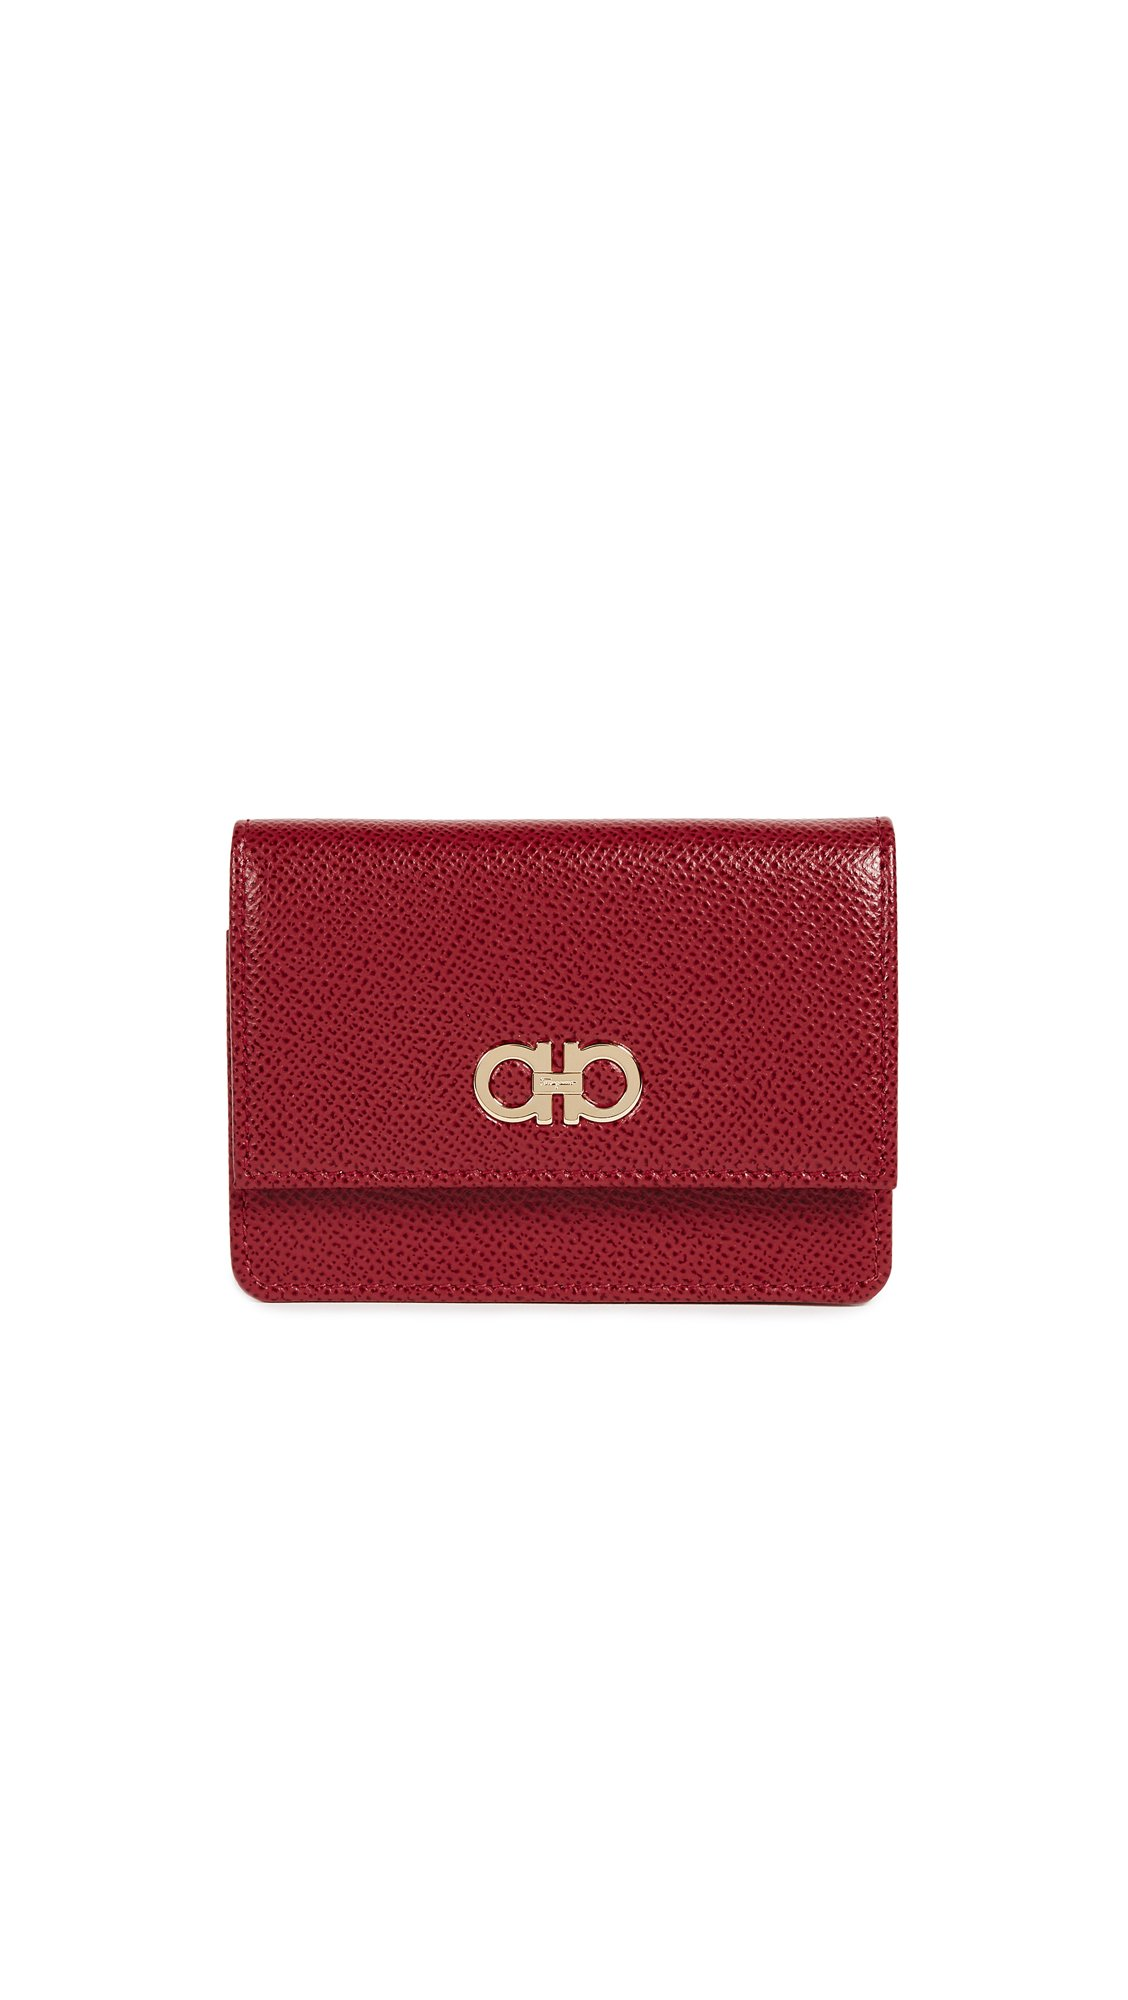 Salvatore Ferragamo Women's Gancini Card Case, Lipstick, One Size